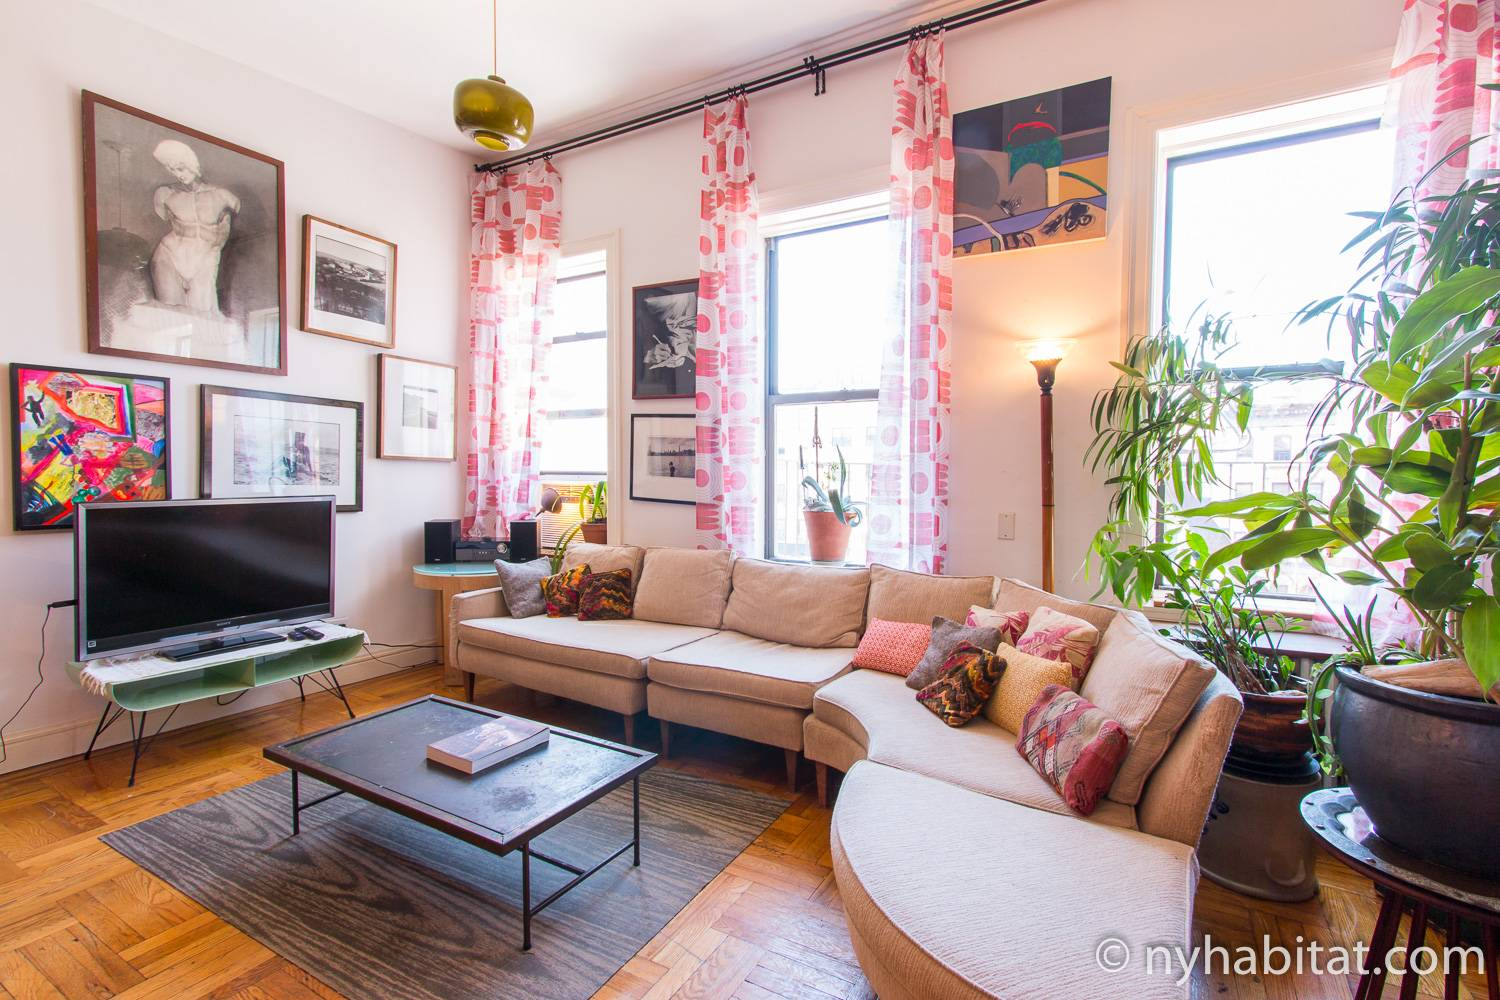 Image of living room of Lower East Side 3 bedroom furnished rental NY-16964 with large curved sofa and TV